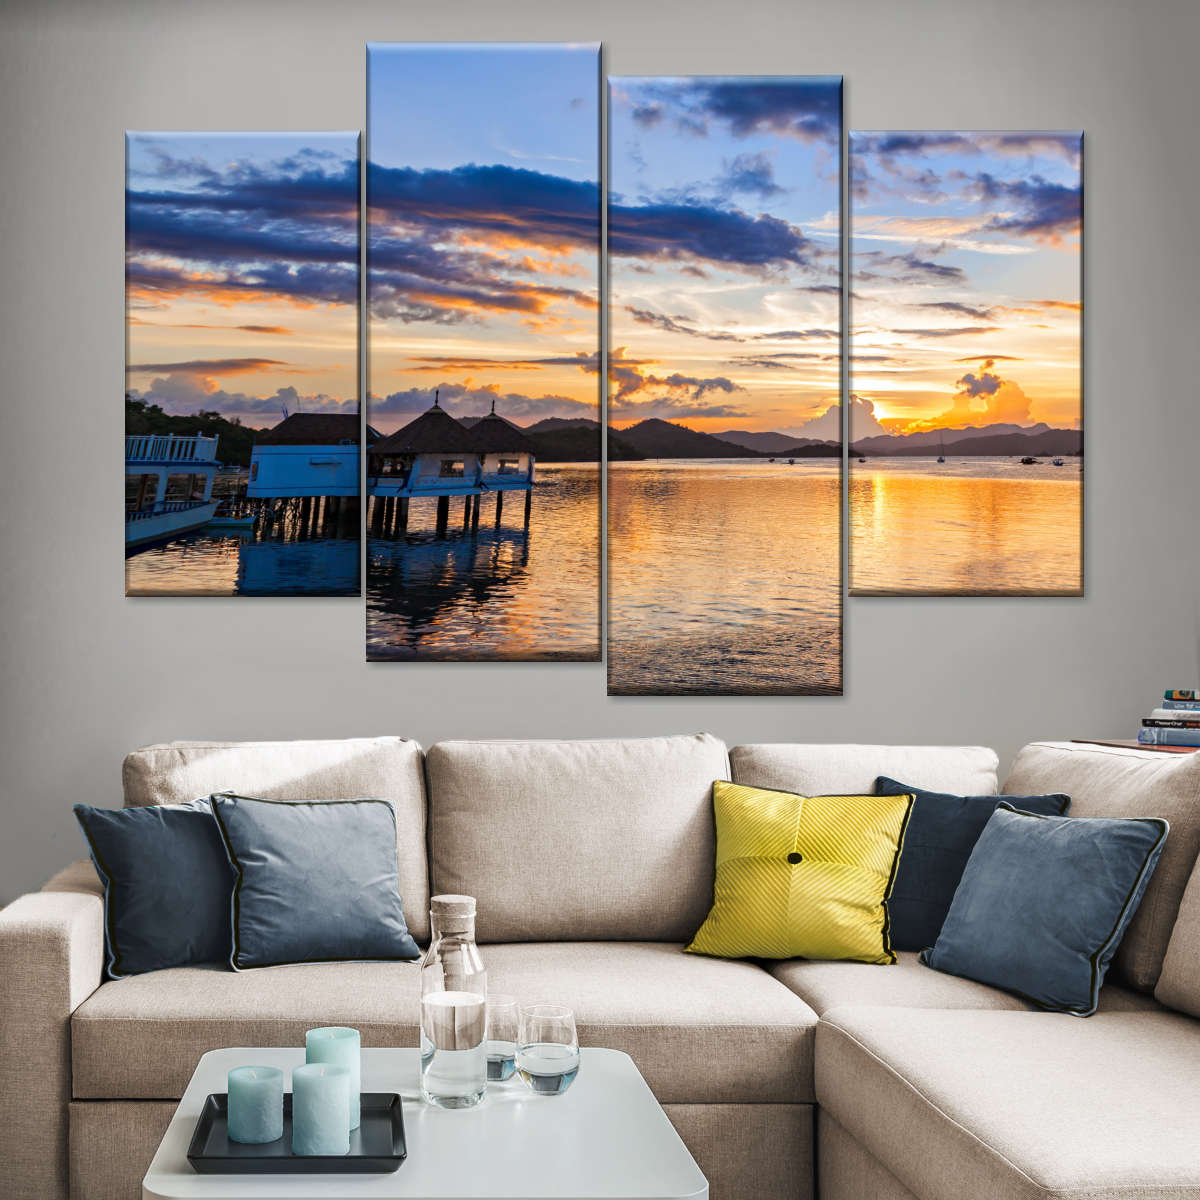 Philippines Sunset Multi Panel Canvas Wall Art Elephantstock